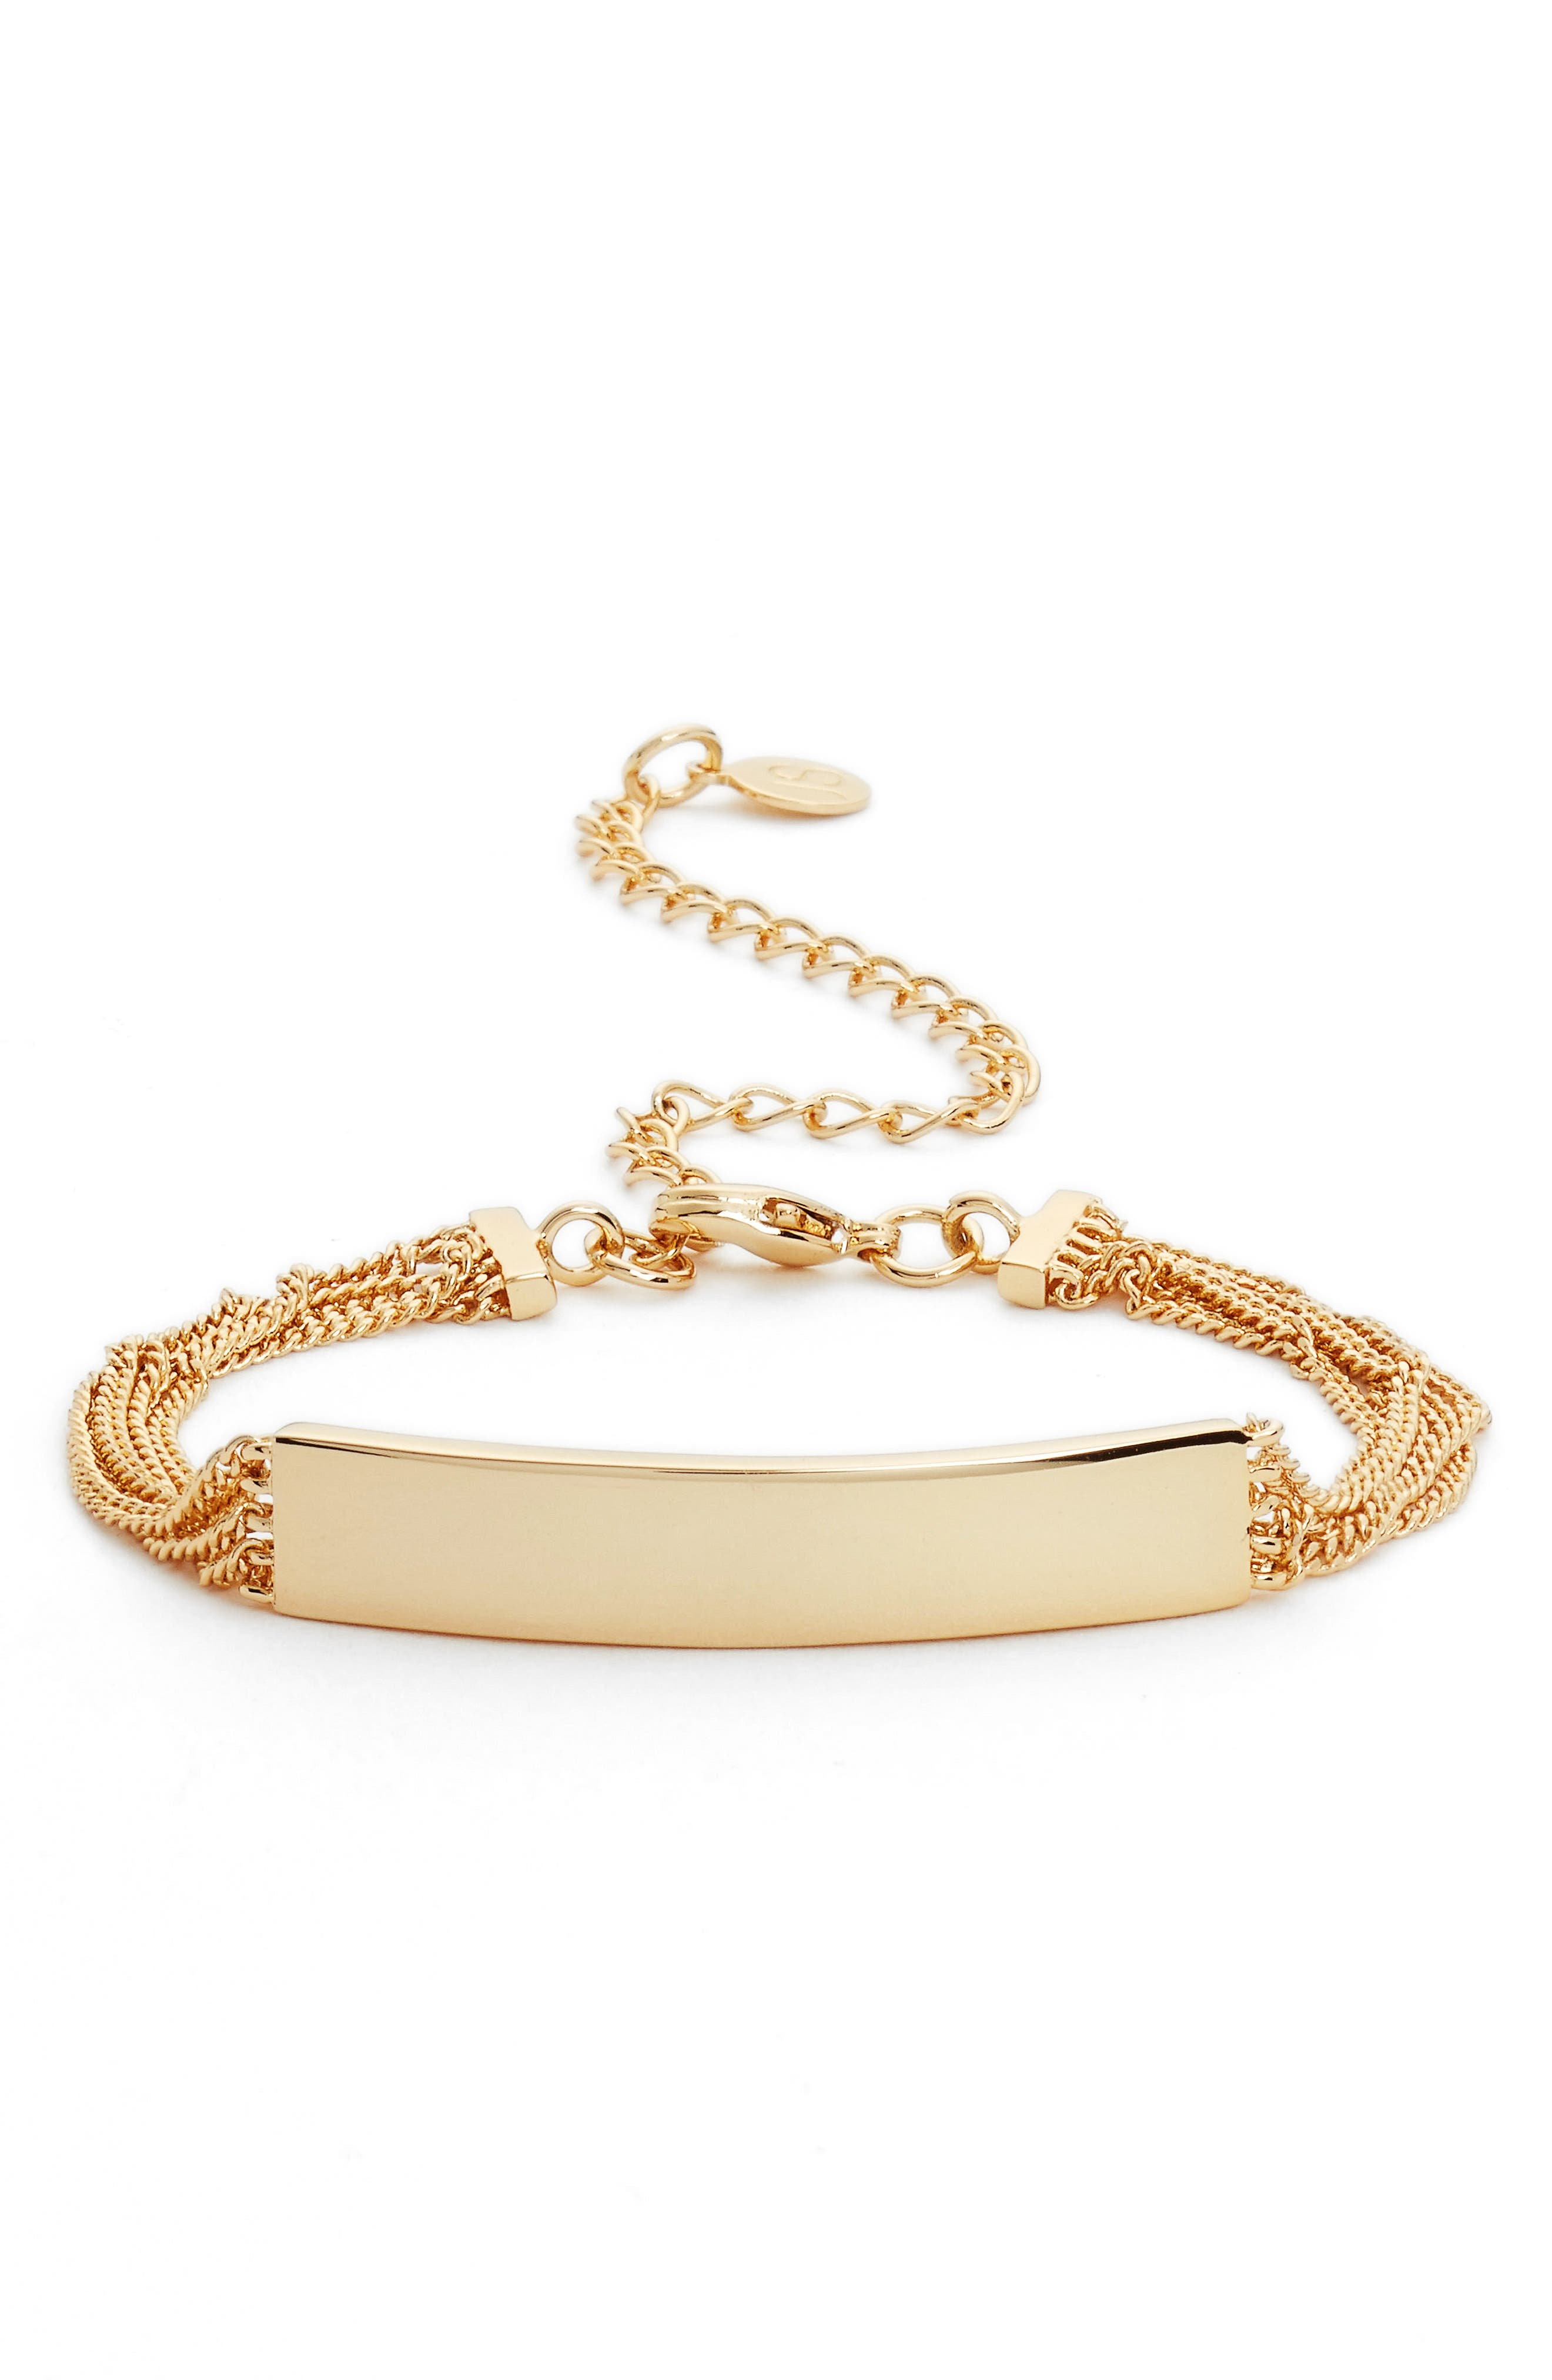 Thera ID Bracelet,                         Main,                         color, Gold